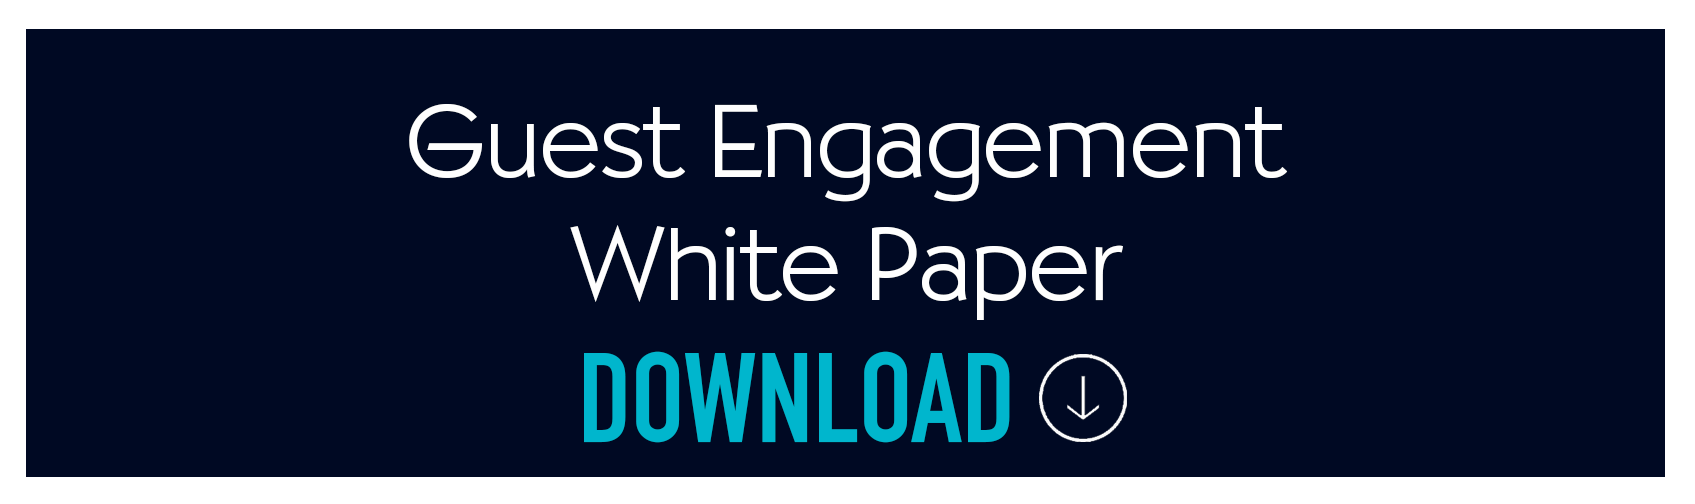 guestengagementwhitepaper5 - Maestro PMS Helping Prepare Hoteliers Attending HITEC Hospitality Technology Conference in Dallas - Innovative Property Management Software Solutions Powering Hotels, Resorts & Multi‑Property Groups.